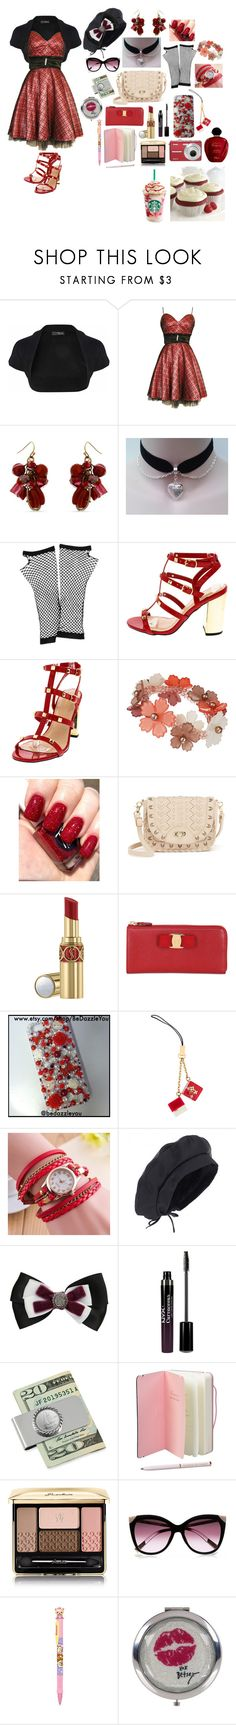 """""""Red Dress(Love for the Valentines Day)♡🎀💗💓💕💖💞💘💌💋"""" by sasukeuchiha2498 ❤ liked on Polyvore featuring Jane Norman, Erica Lyons, Forever 21, Wallis, Under One Sky, Yves Saint Laurent, Salvatore Ferragamo, Louis Vuitton, Sebastian Professional and NYX"""